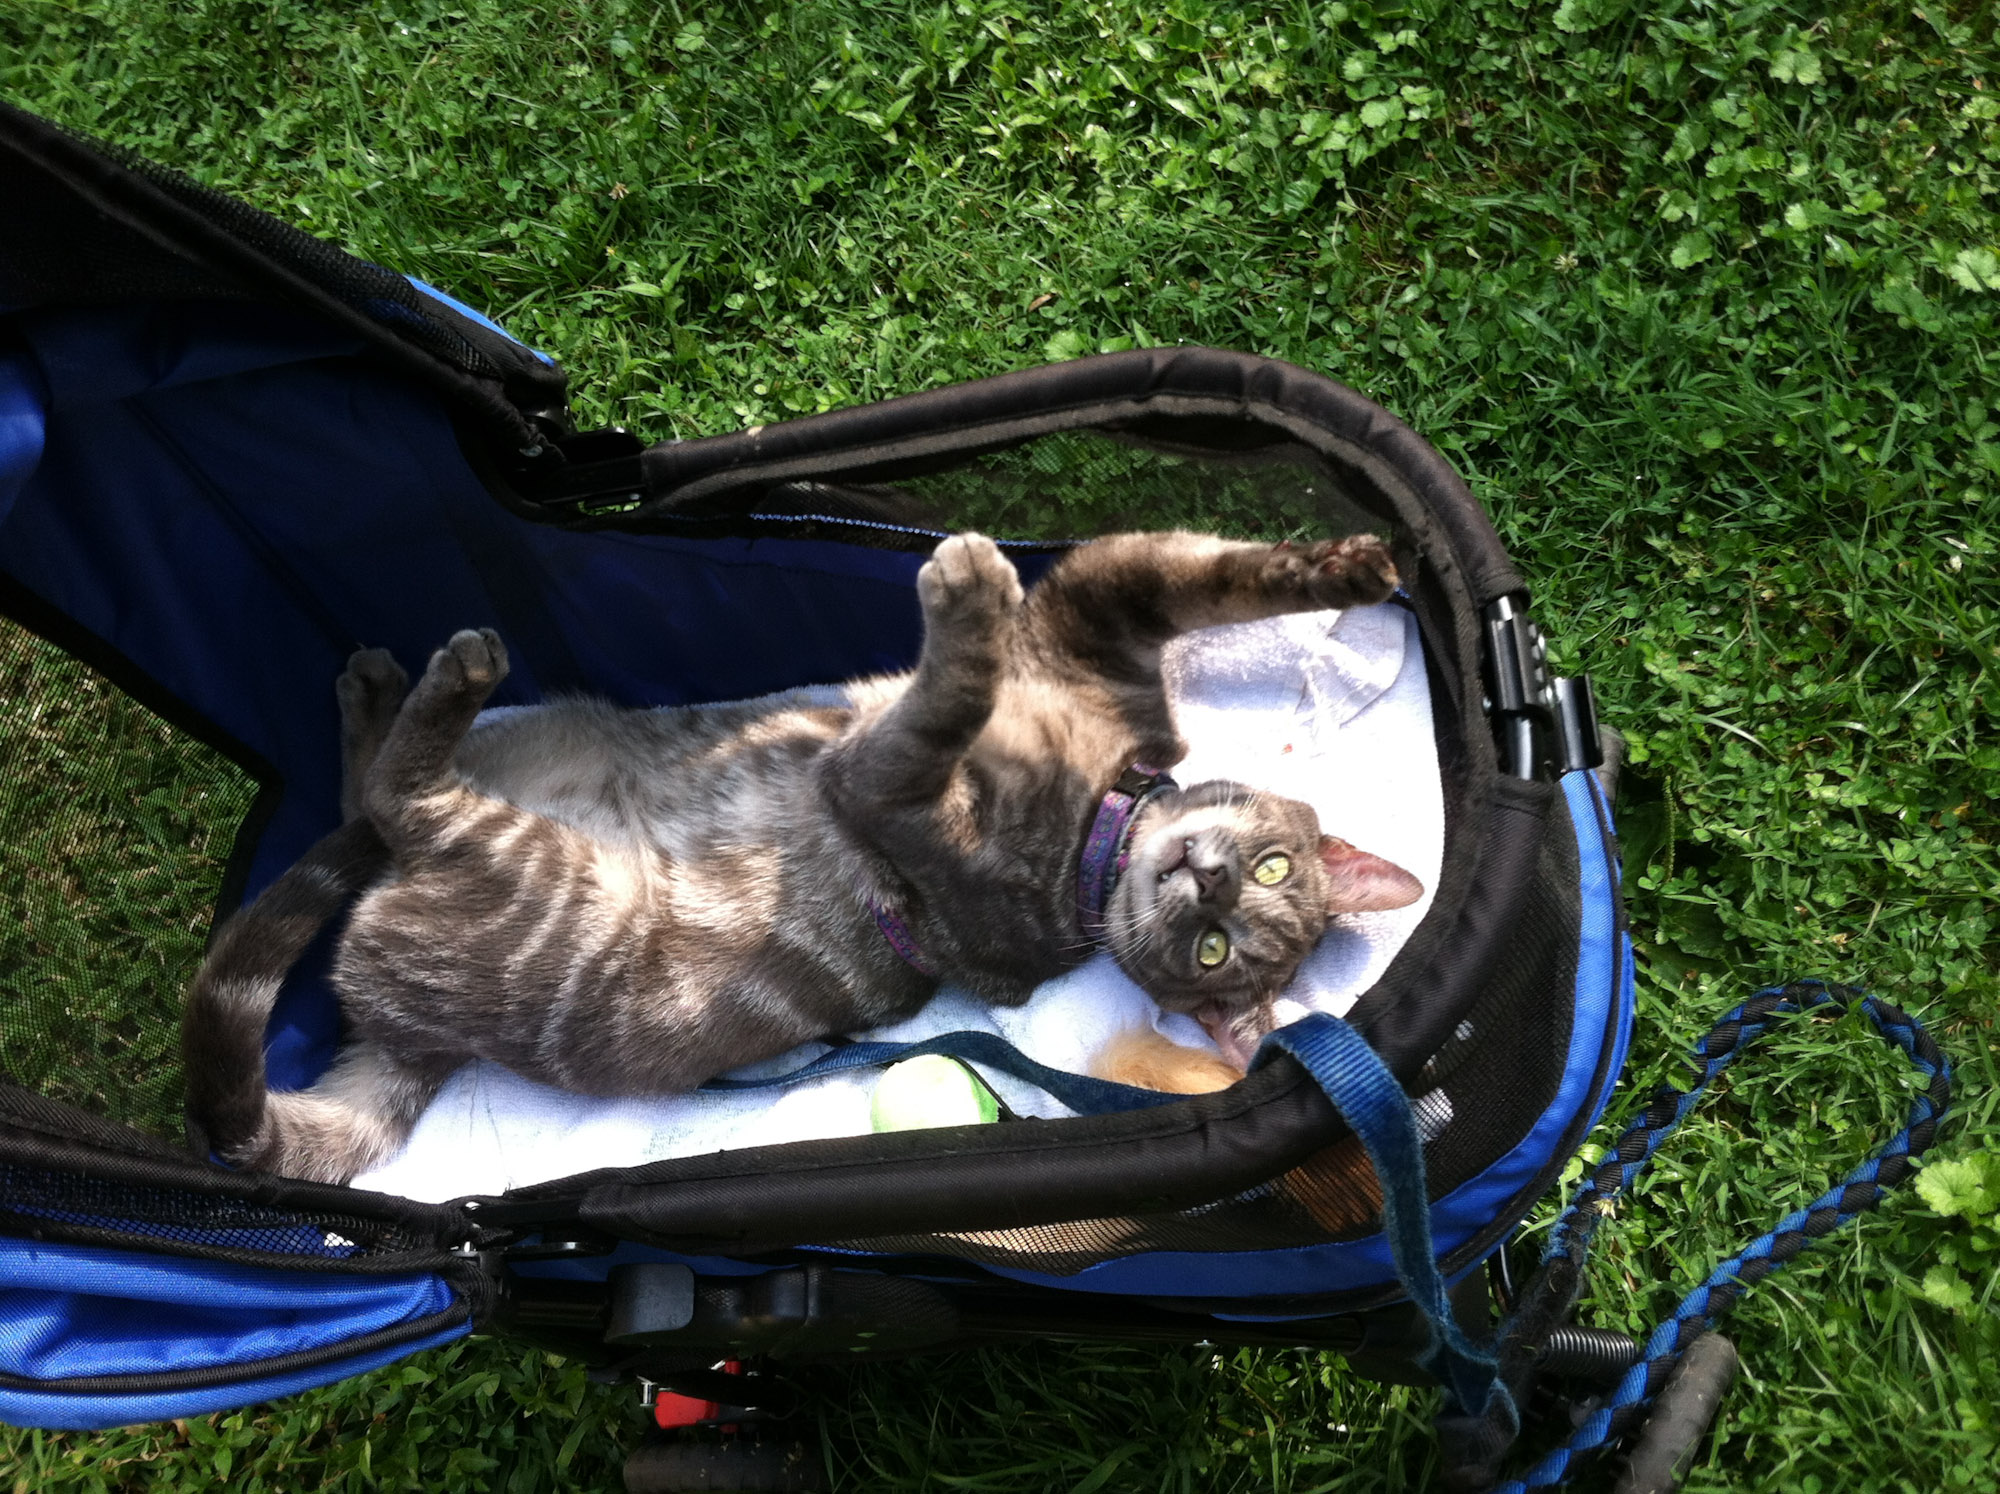 cat riding in stroller